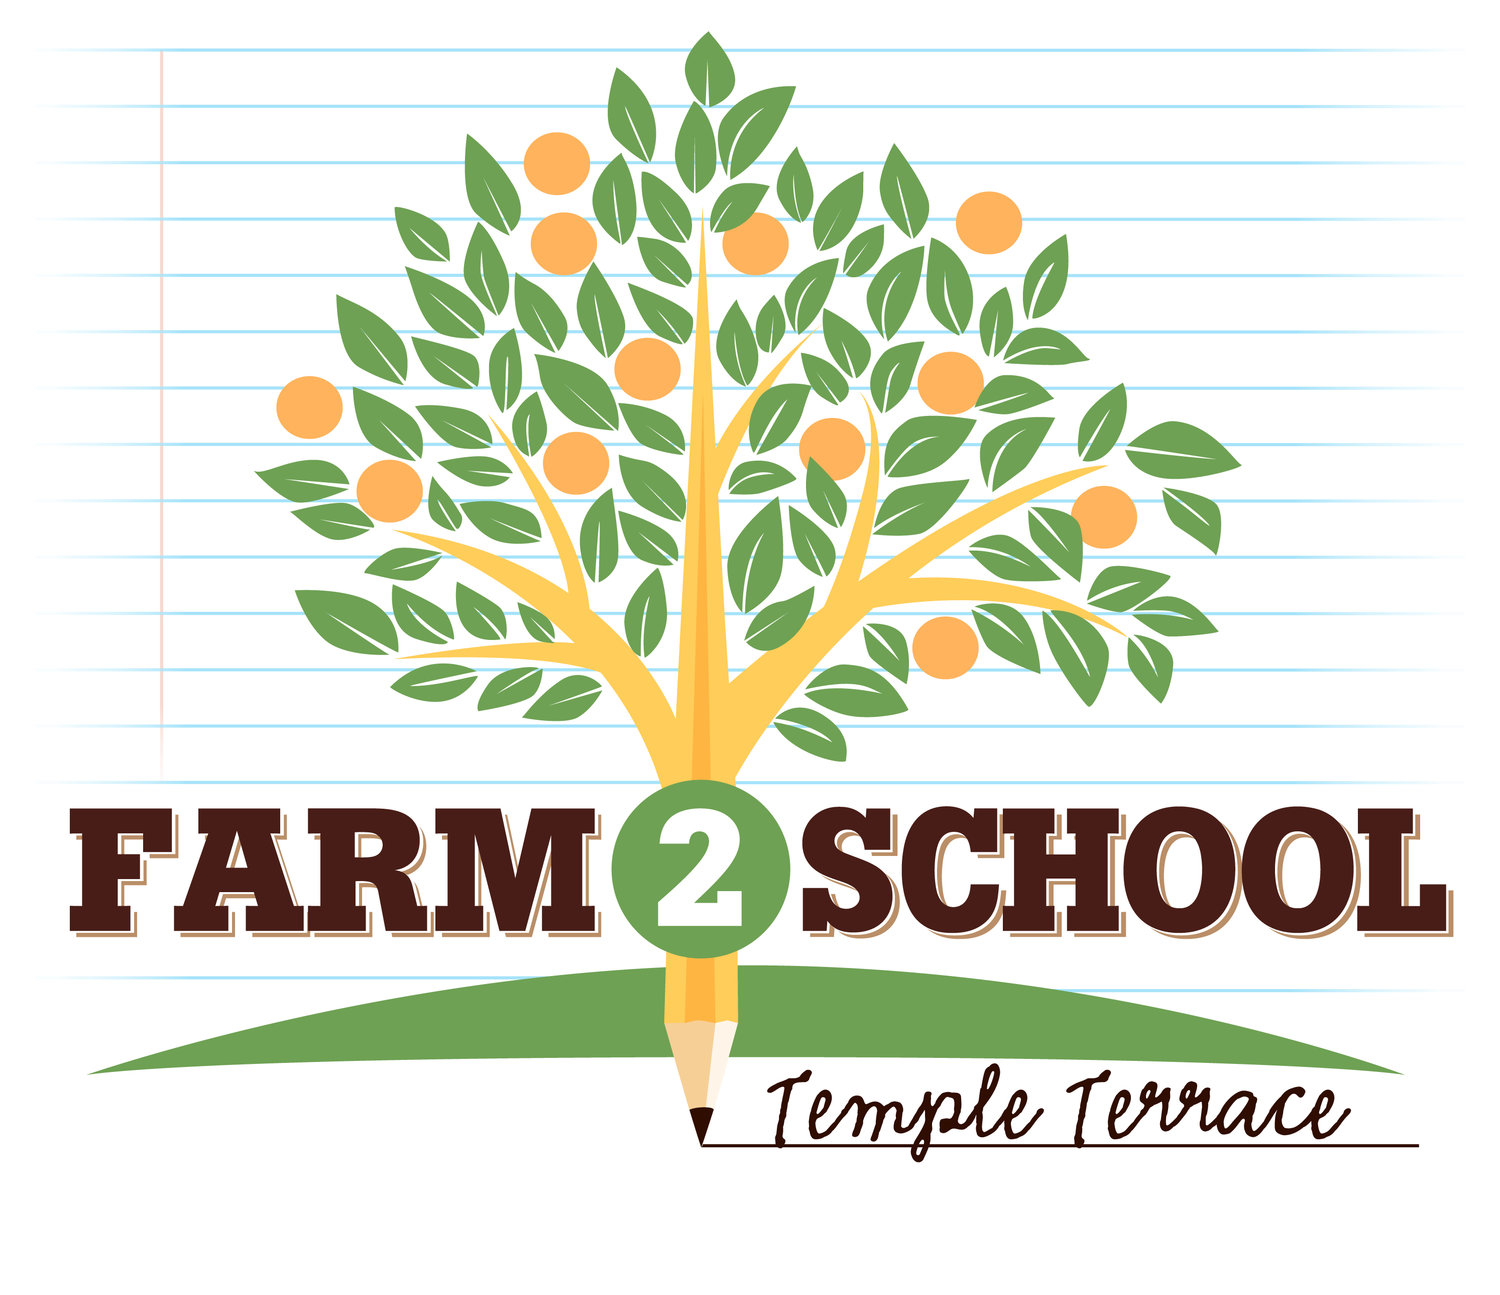 Temple Terrace Farm 2 School:            empowers youth for health and success through hands-on agricultural experiences